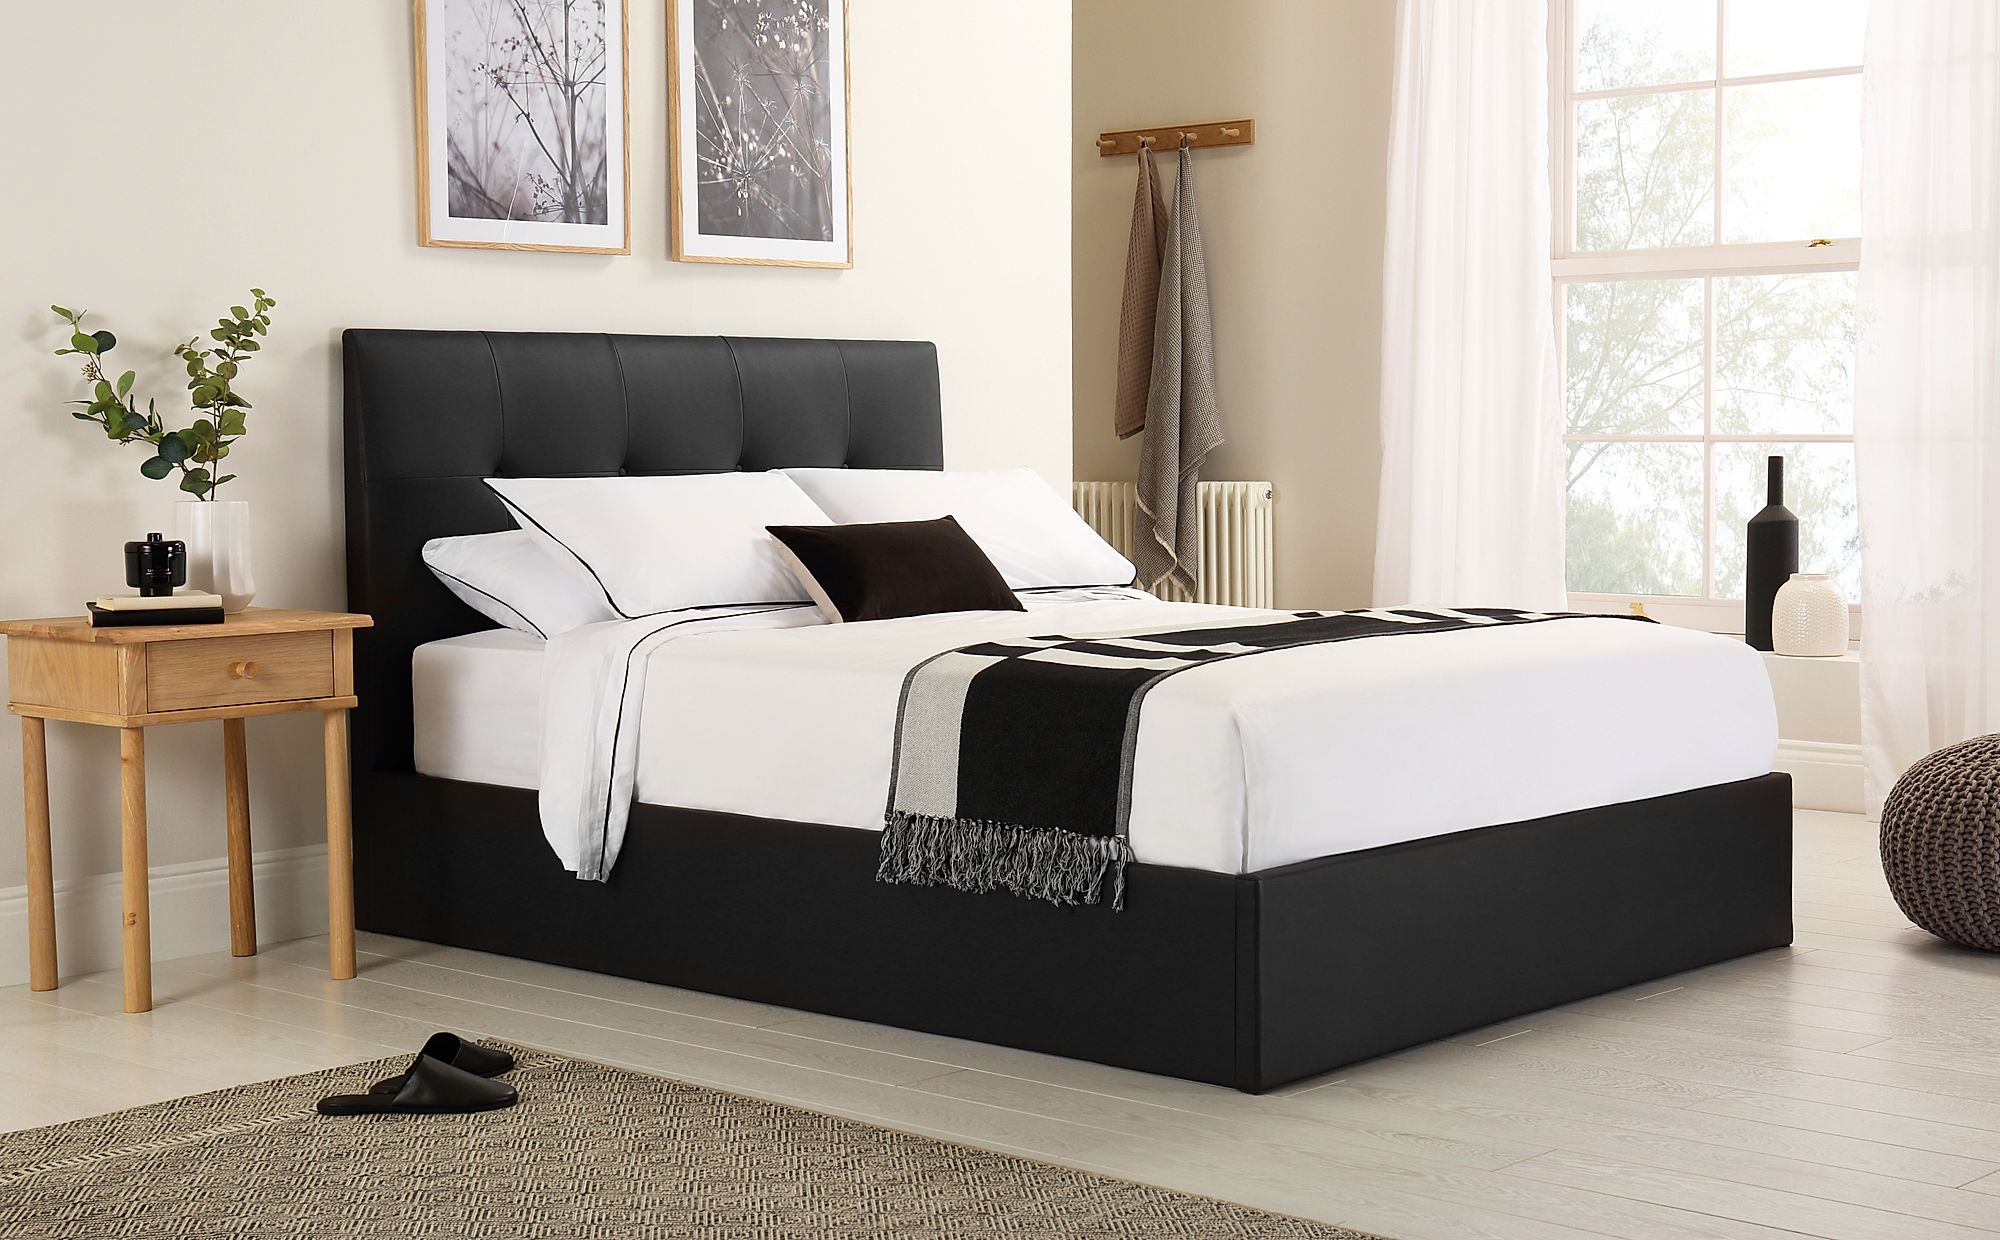 Caversham Black Leather Ottoman King Size Bed Furniture And Choice